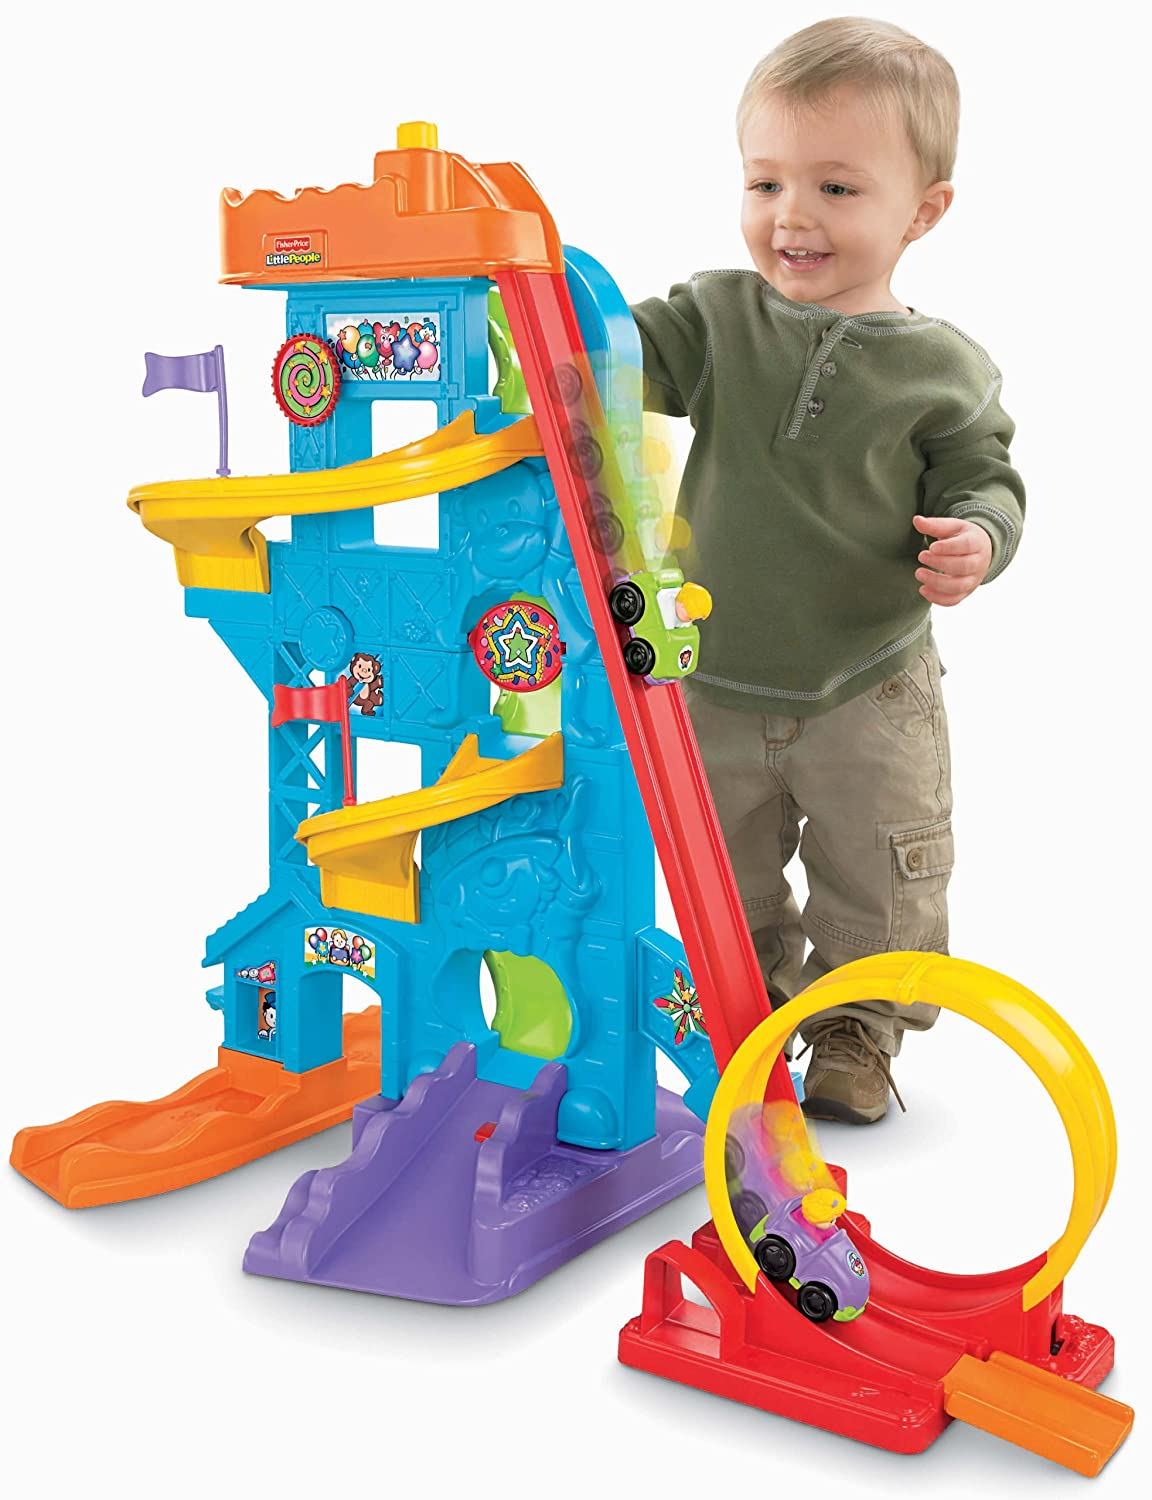 40 Best Toys for 6 Year Old Boys 2017 Heavycom